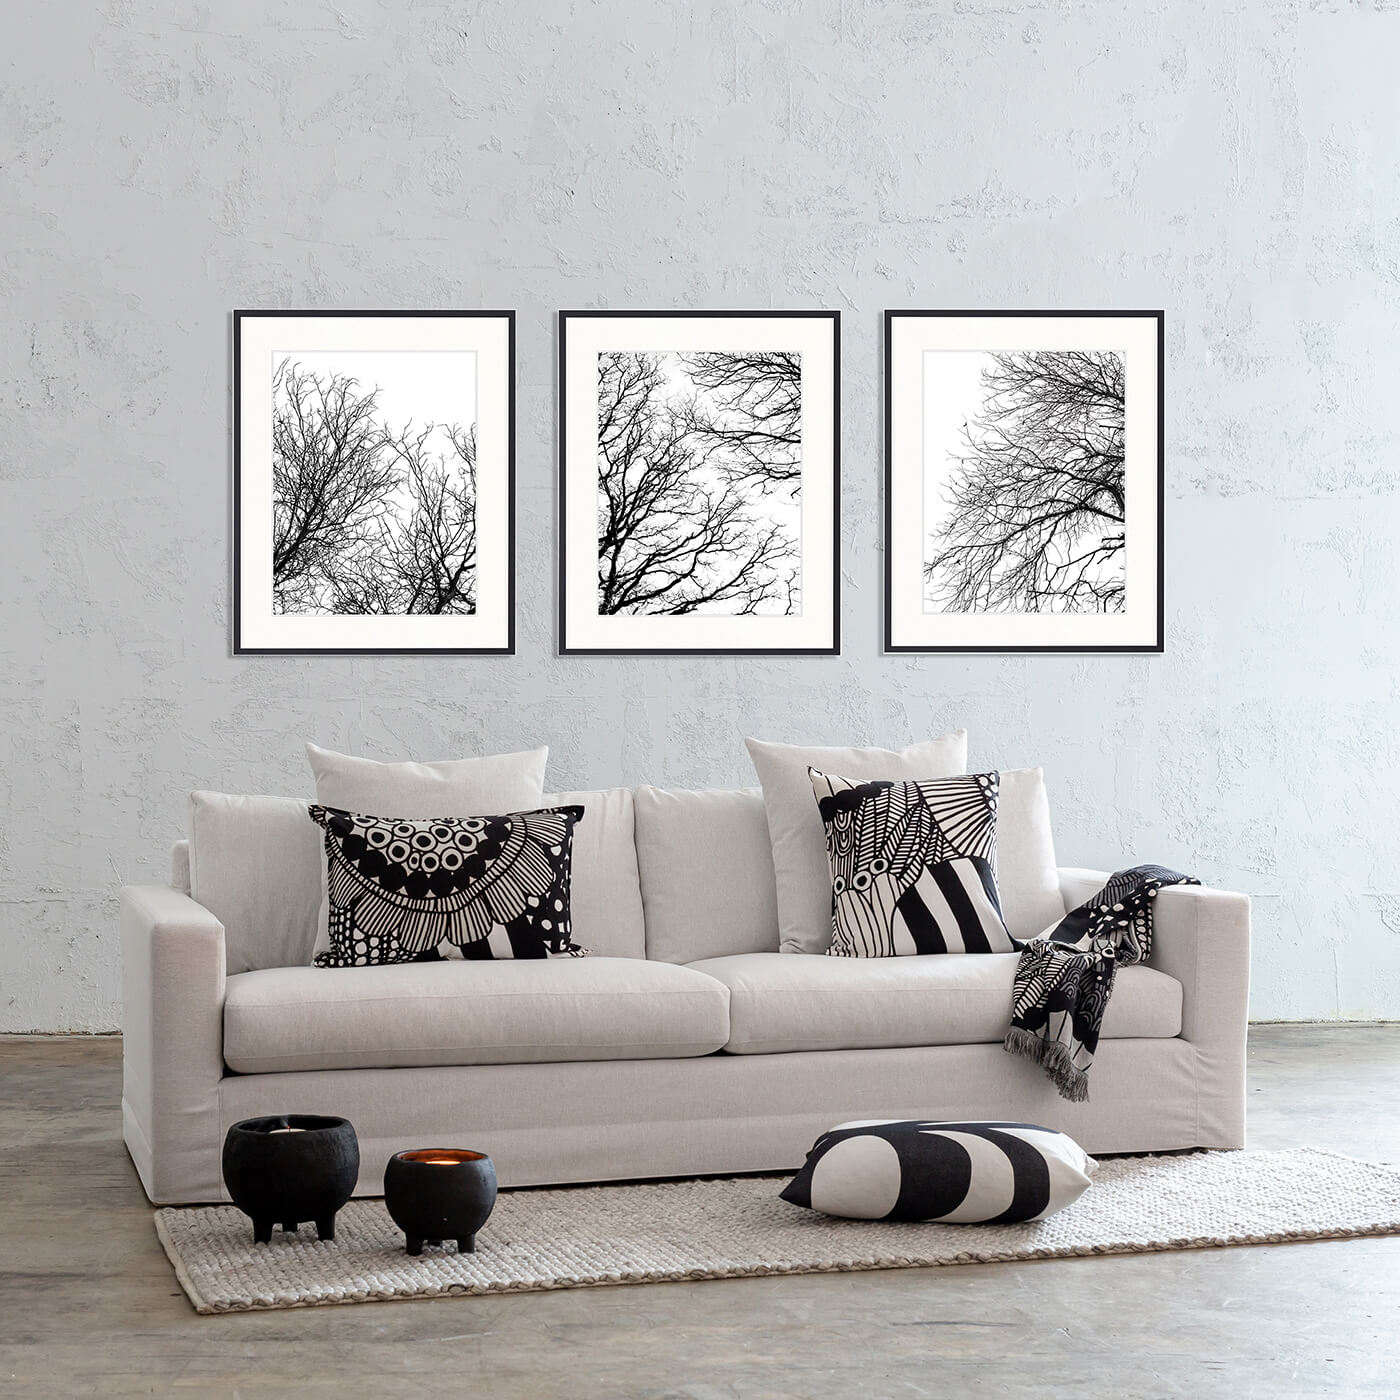 DESIGNER BOYS ART  |  HYDE PARK TREE SILHOUETTE III  |  PRINTED ARTWORK